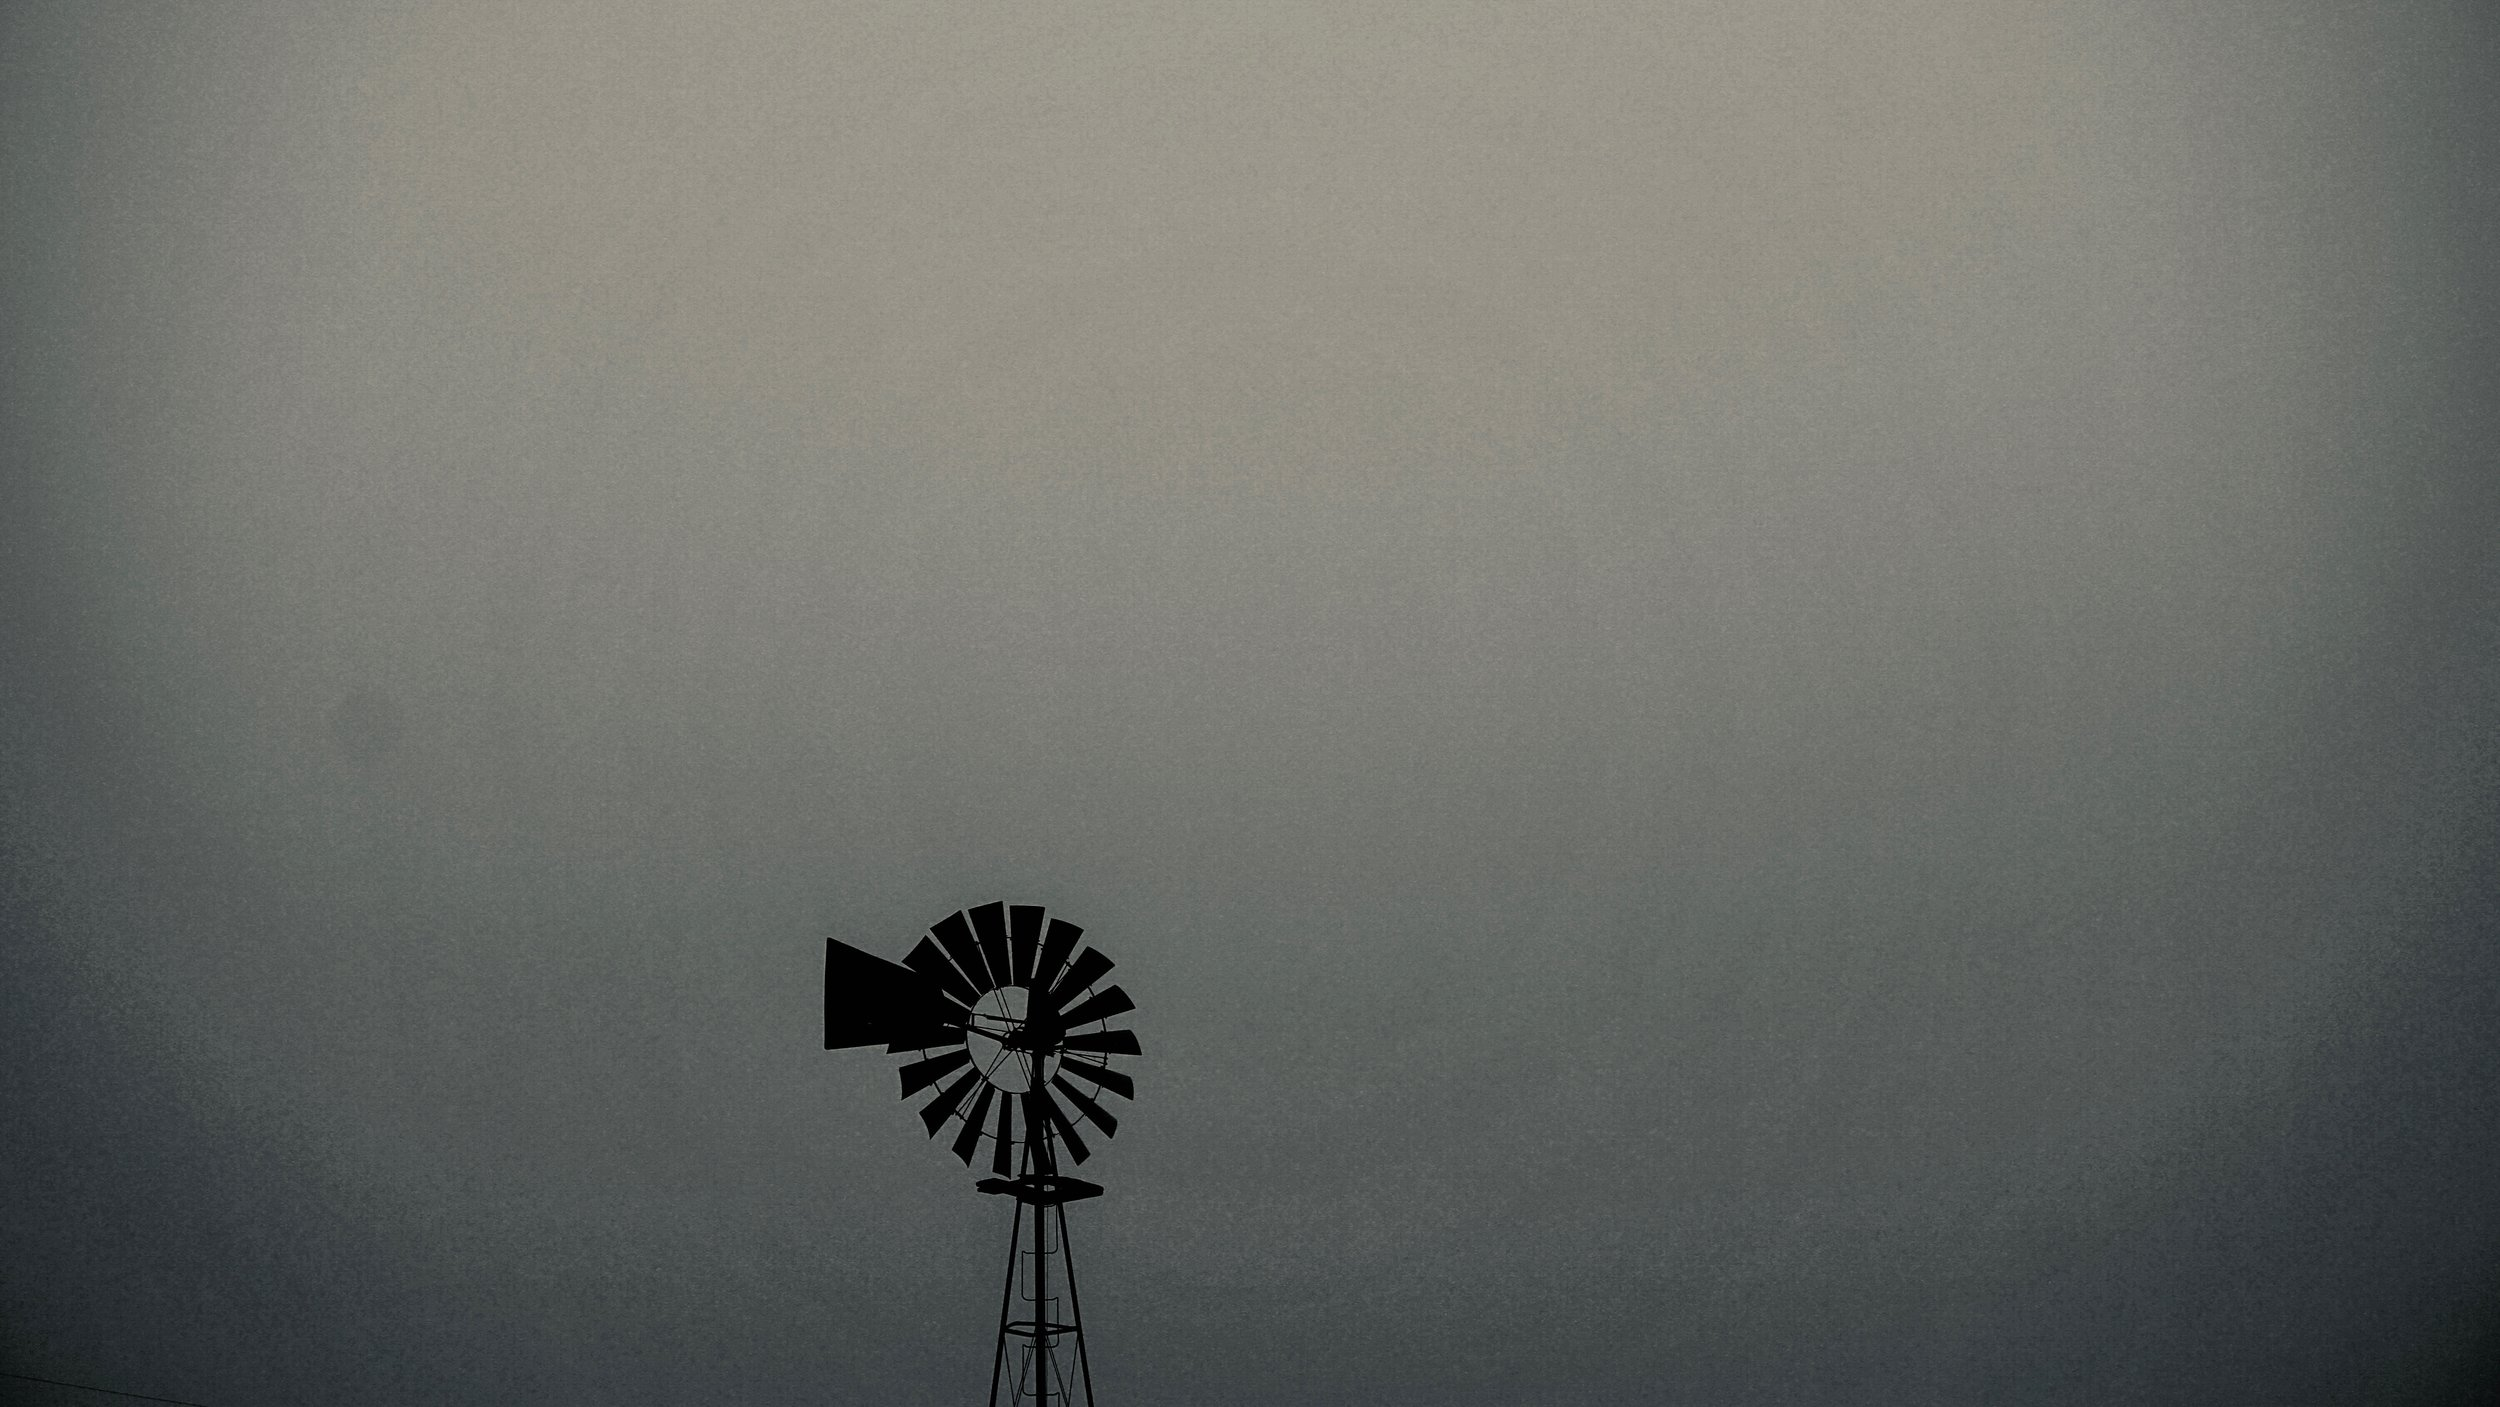 Texas Panhandle Windmill